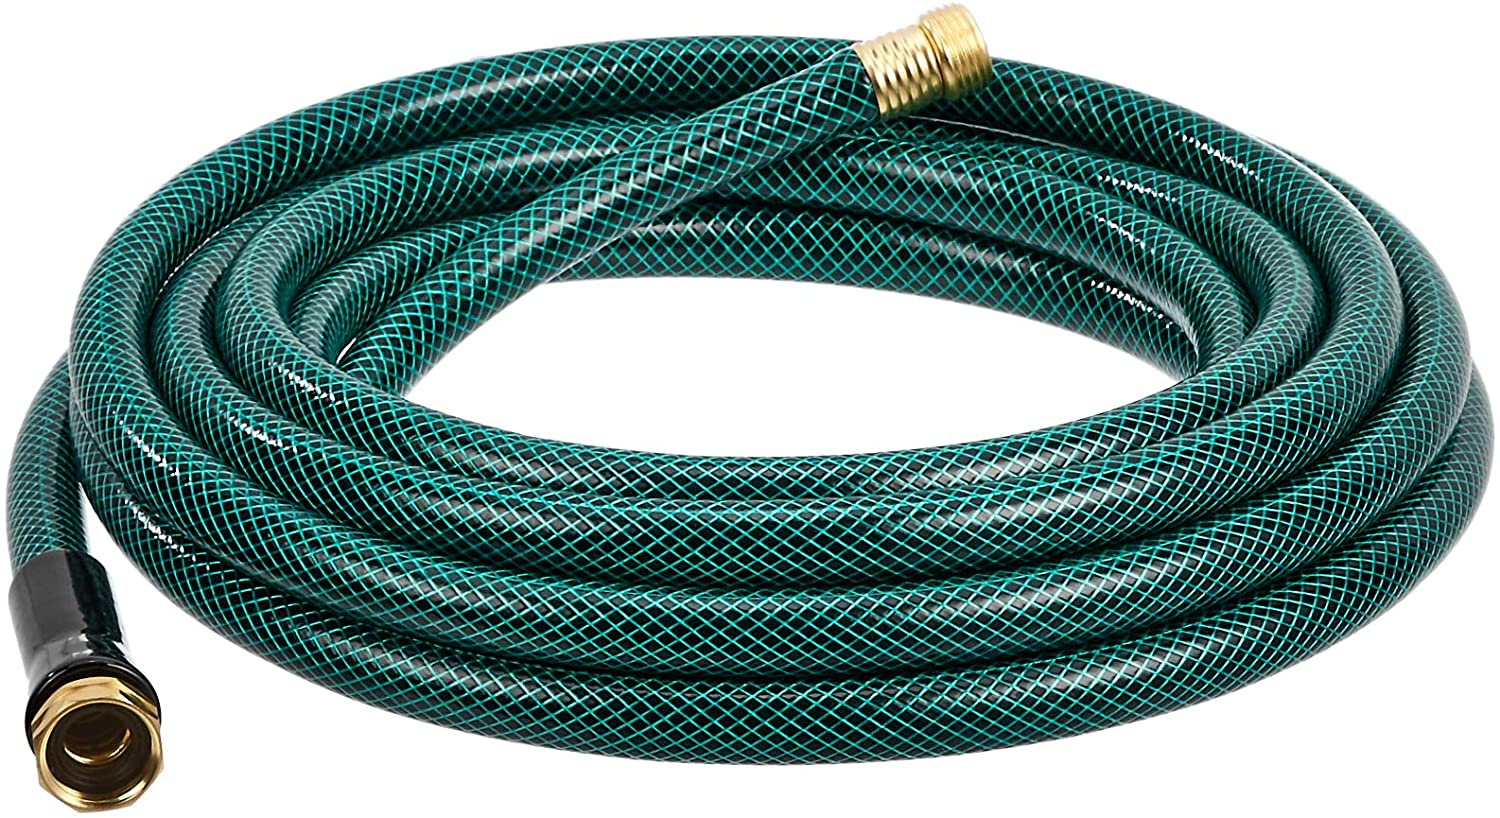 Amazon Basics Garden Tool Collection - Water hose with Brass Coupling 25ft, 5/8'', 300psi